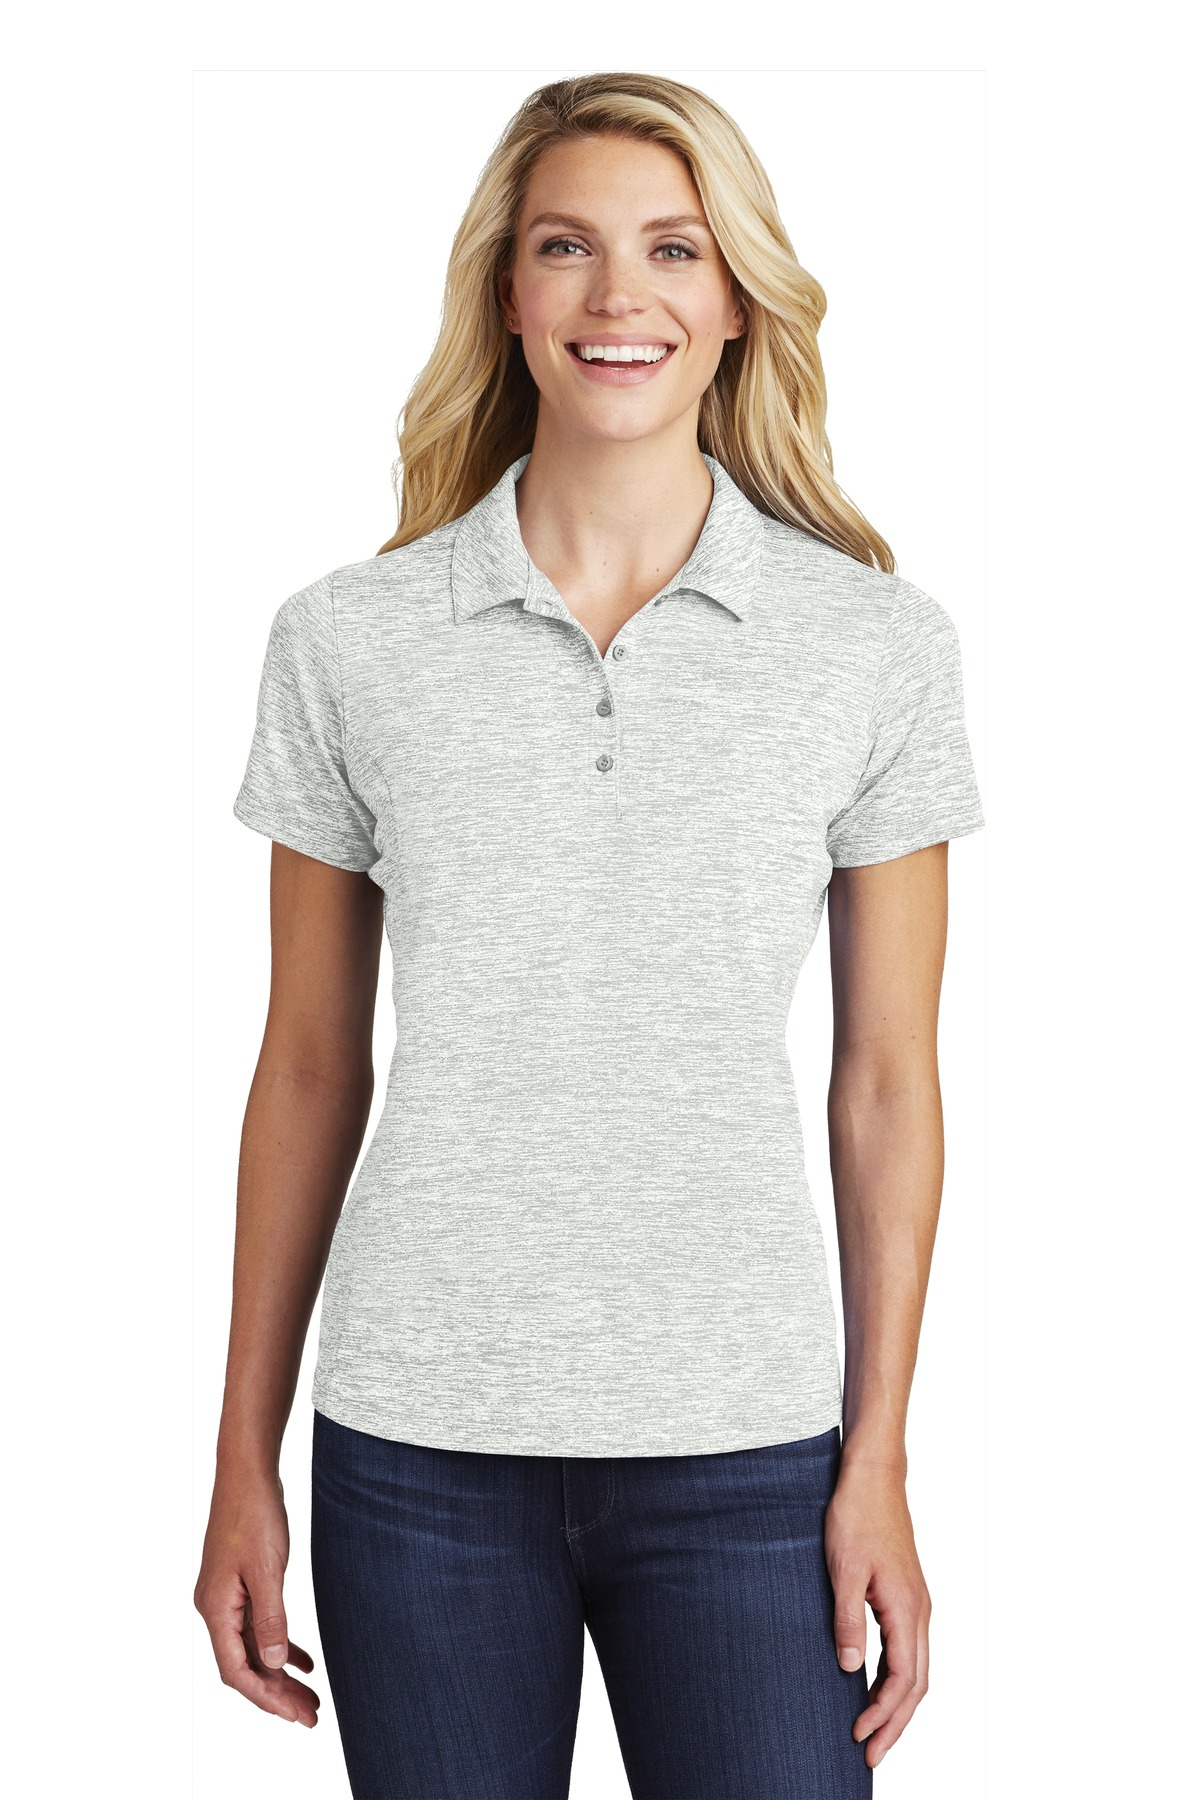 Sport-Tek  ®  Ladies PosiCharge  ®  Electric Heather Polo. LST590 - Silver Electric